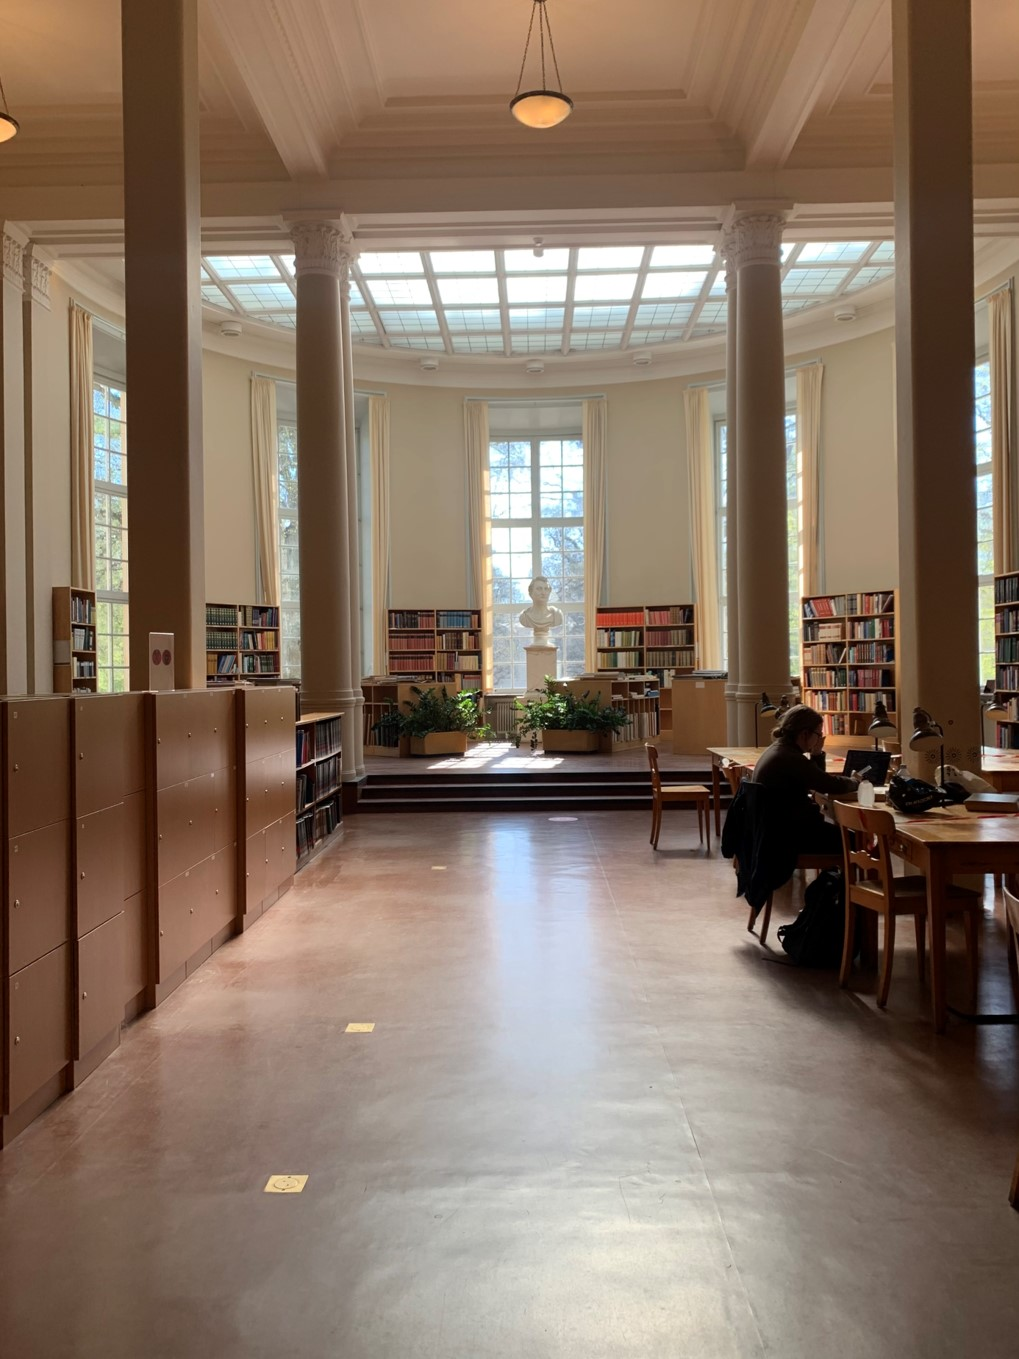 people studying inside of library with spacious corridor and skylight during daytime